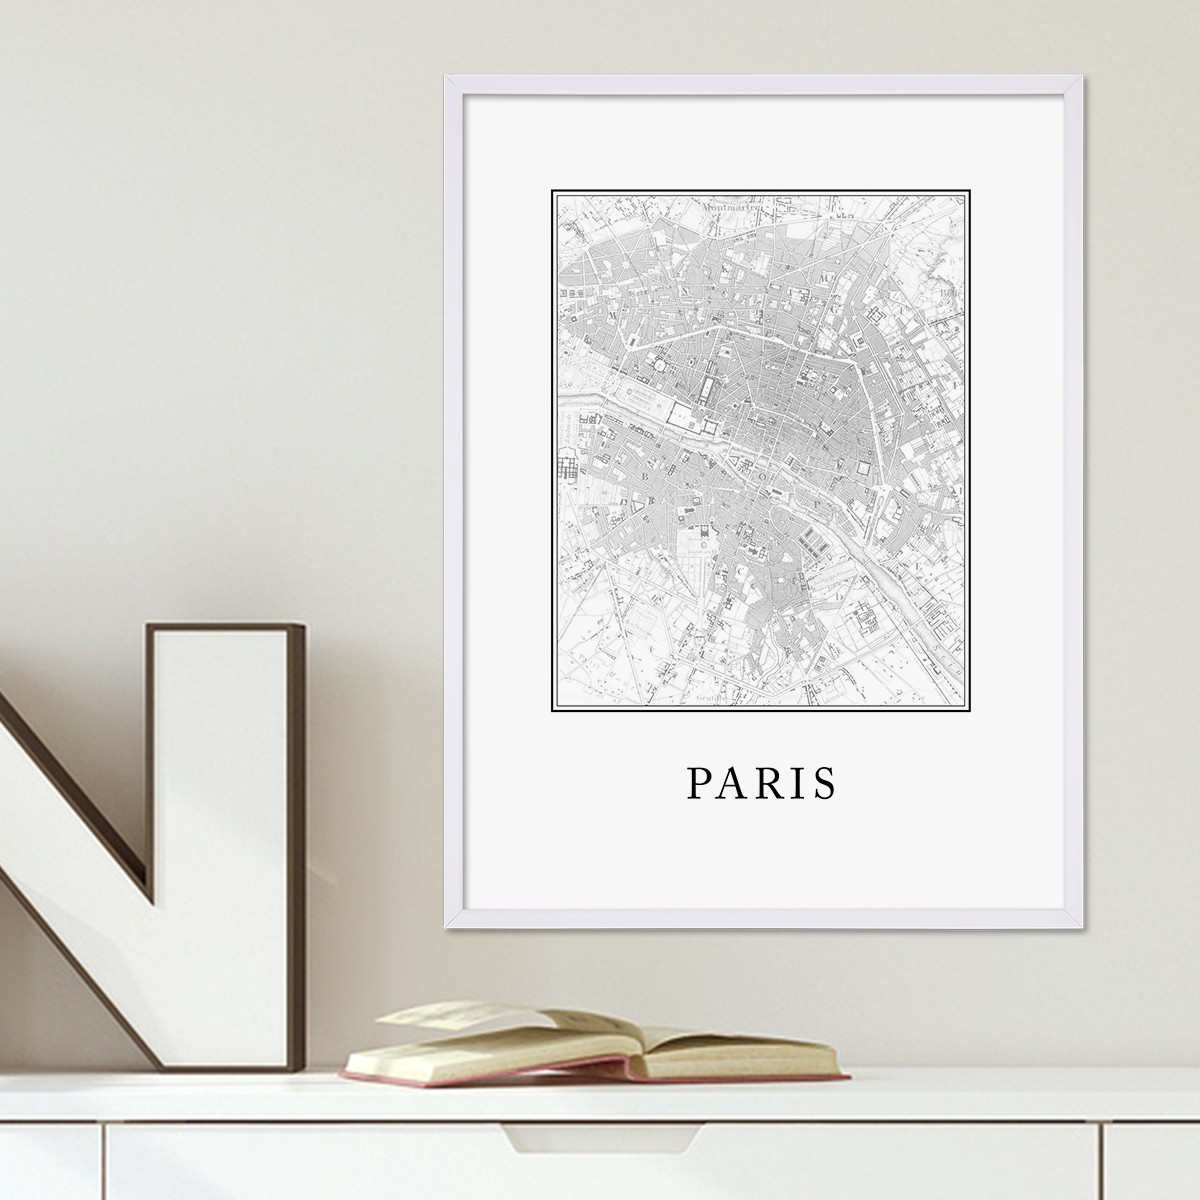 poster mit bilderrahmen weiss 39 paris karte 39 30x40 cm schwarz weiss motiv natur landschaft map. Black Bedroom Furniture Sets. Home Design Ideas